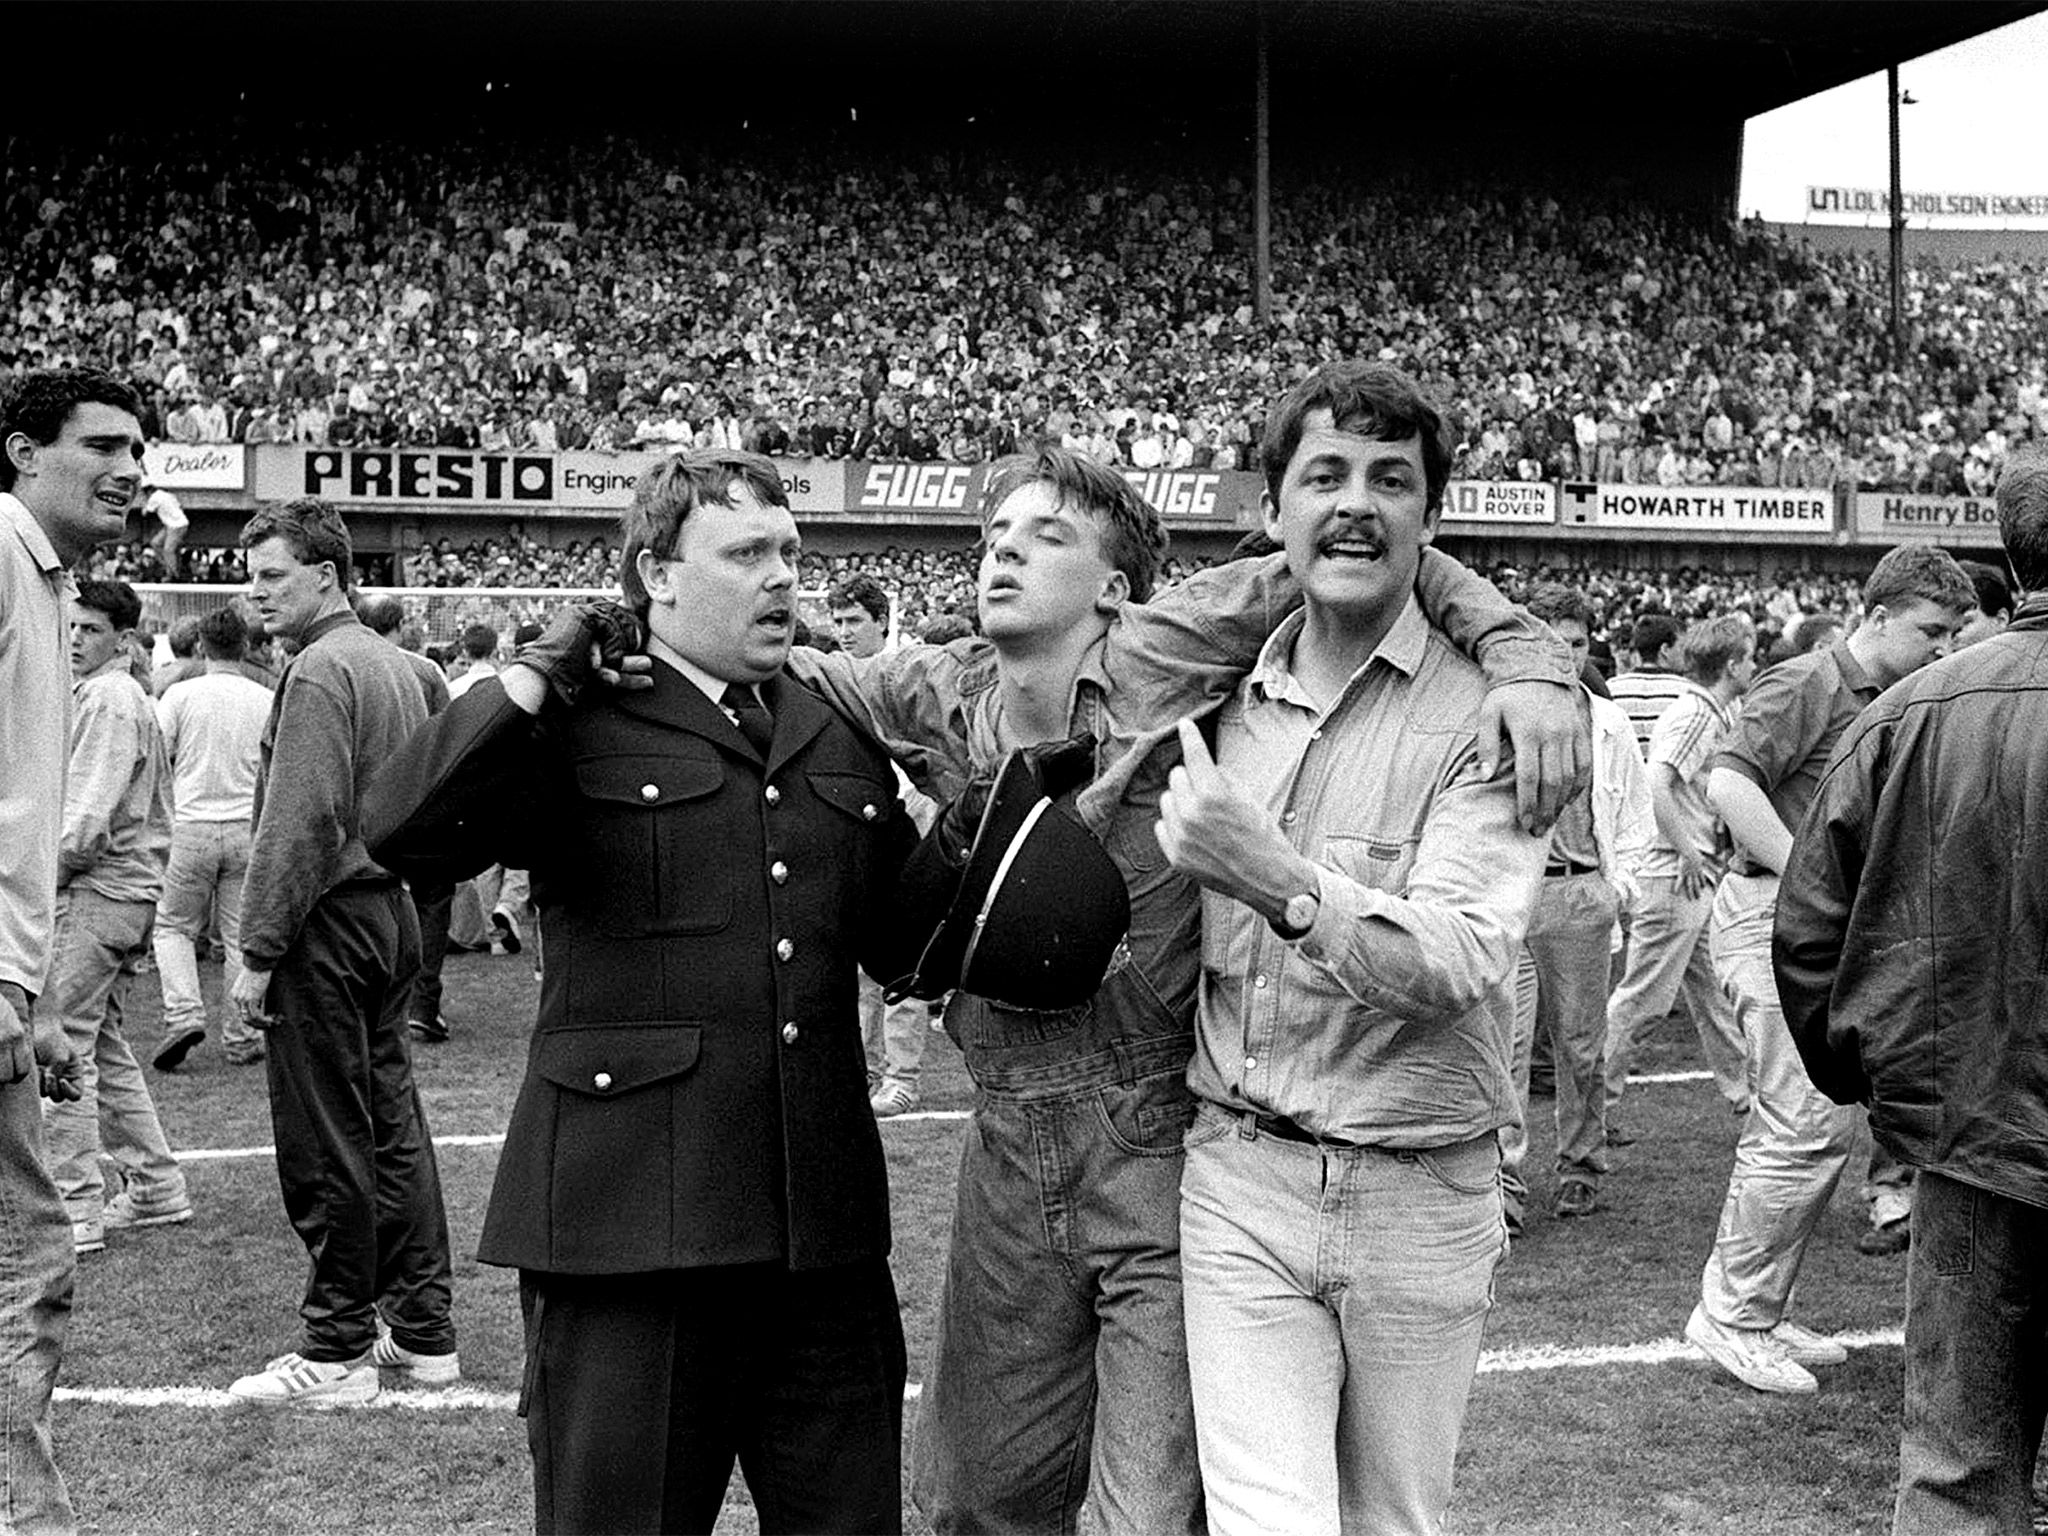 Hillsborough Inquest Rules 96 Were Unlawfully Killed As It